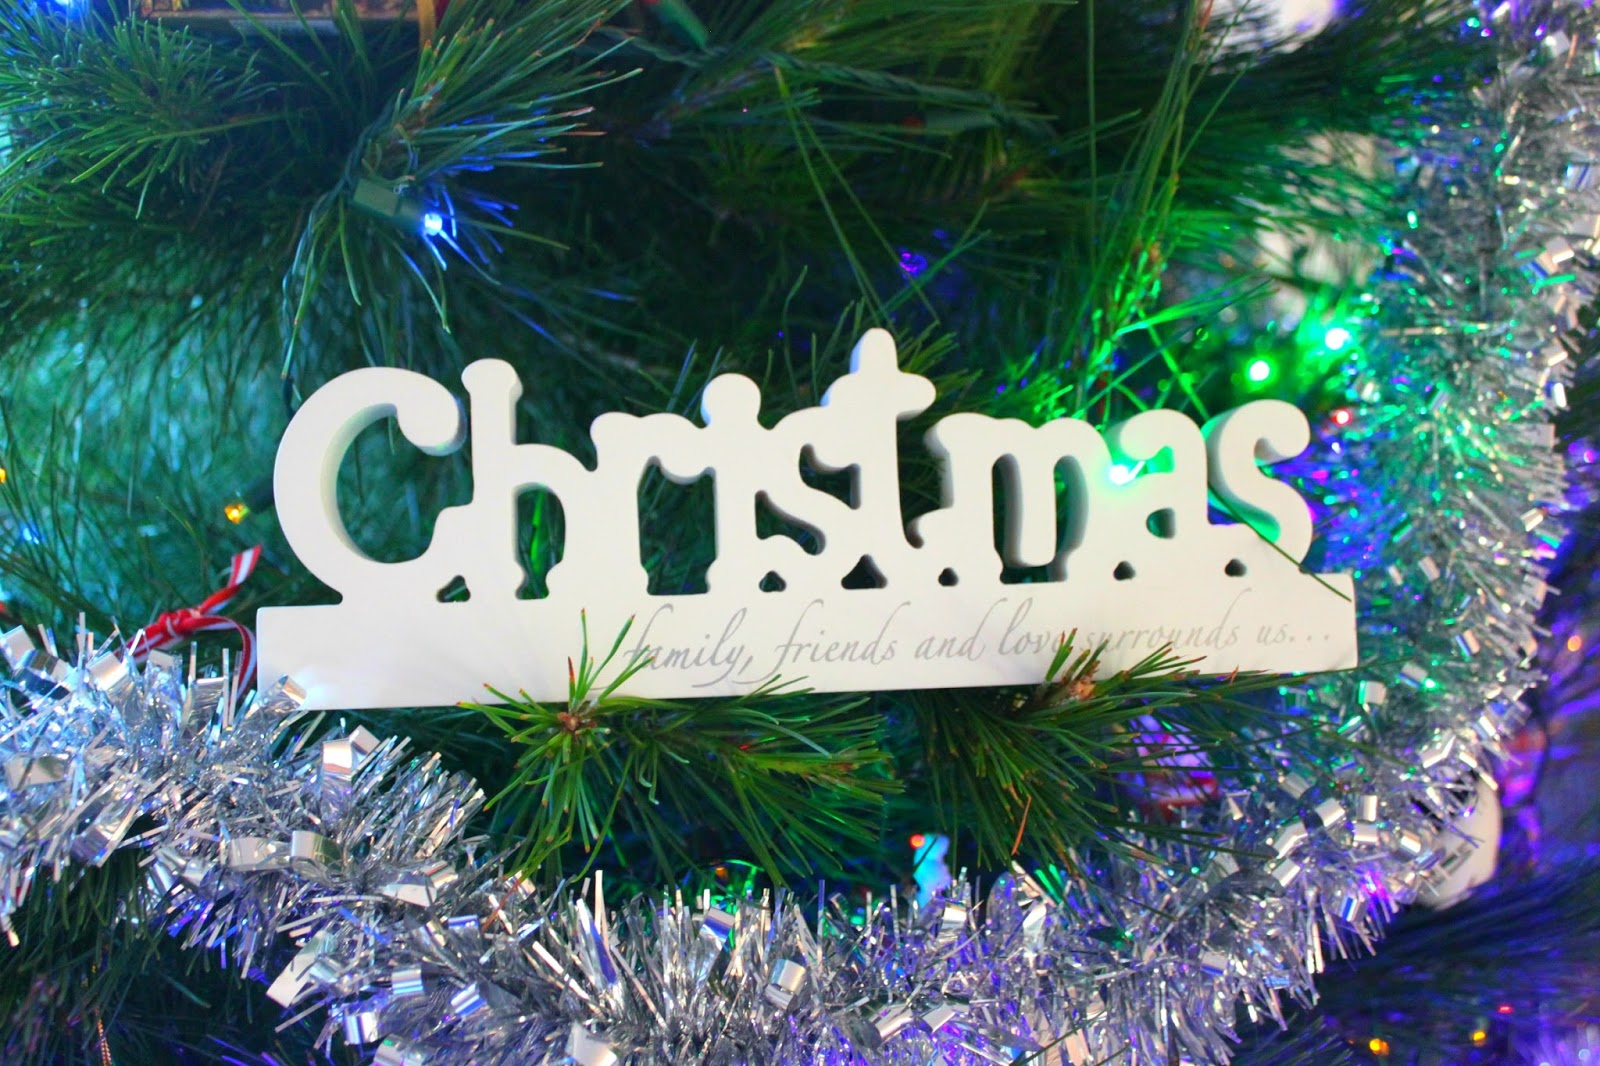 how to get into the christmas spirit december the month of christmas family and love preparations for the special day celebrating the birth of jesus are - How To Get Into The Christmas Spirit